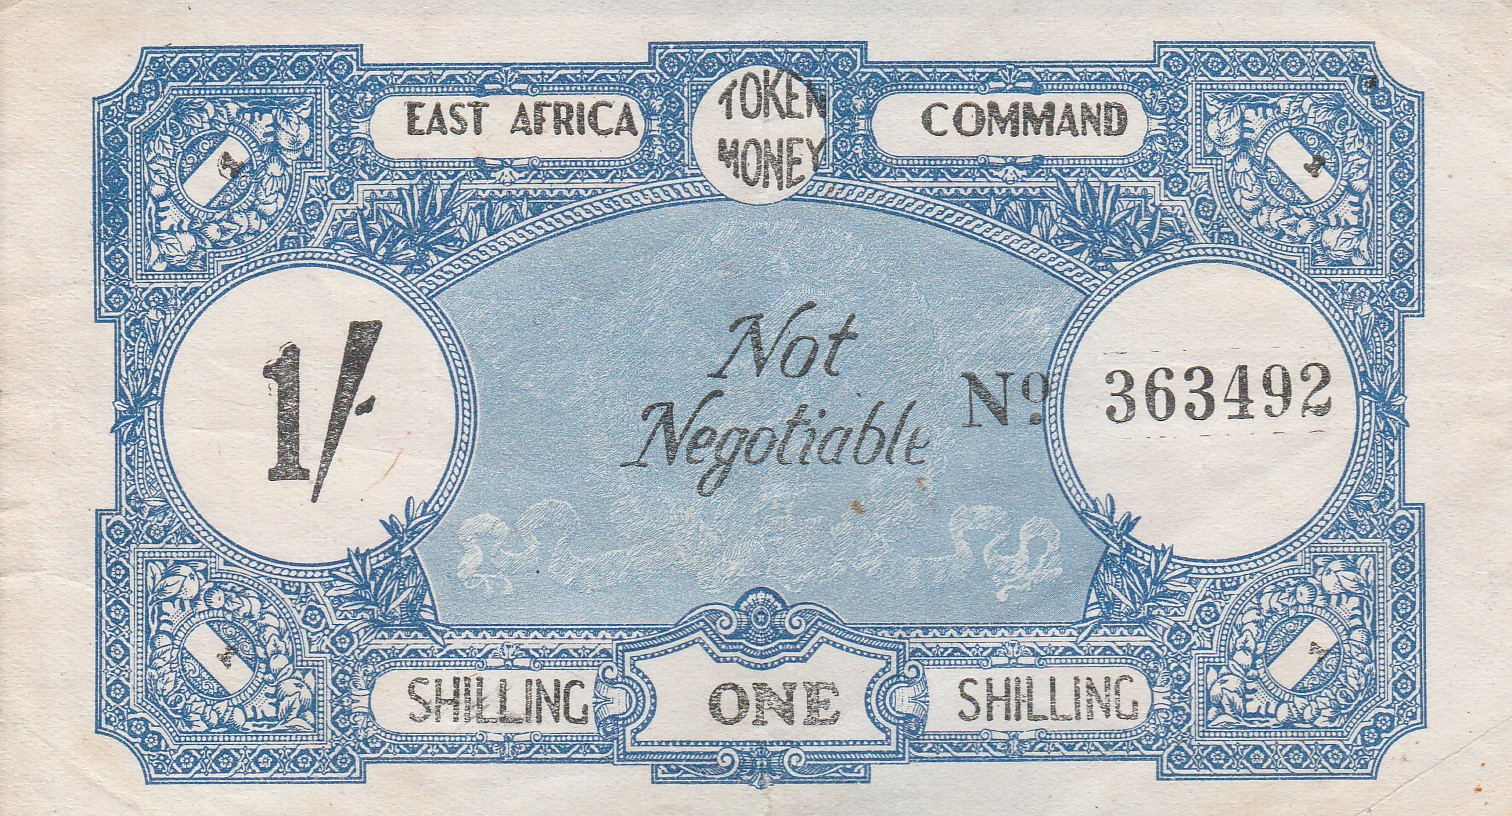 SCOTSBANKNOTES: IS THIS A PRISONER OF WAR CURRENCY